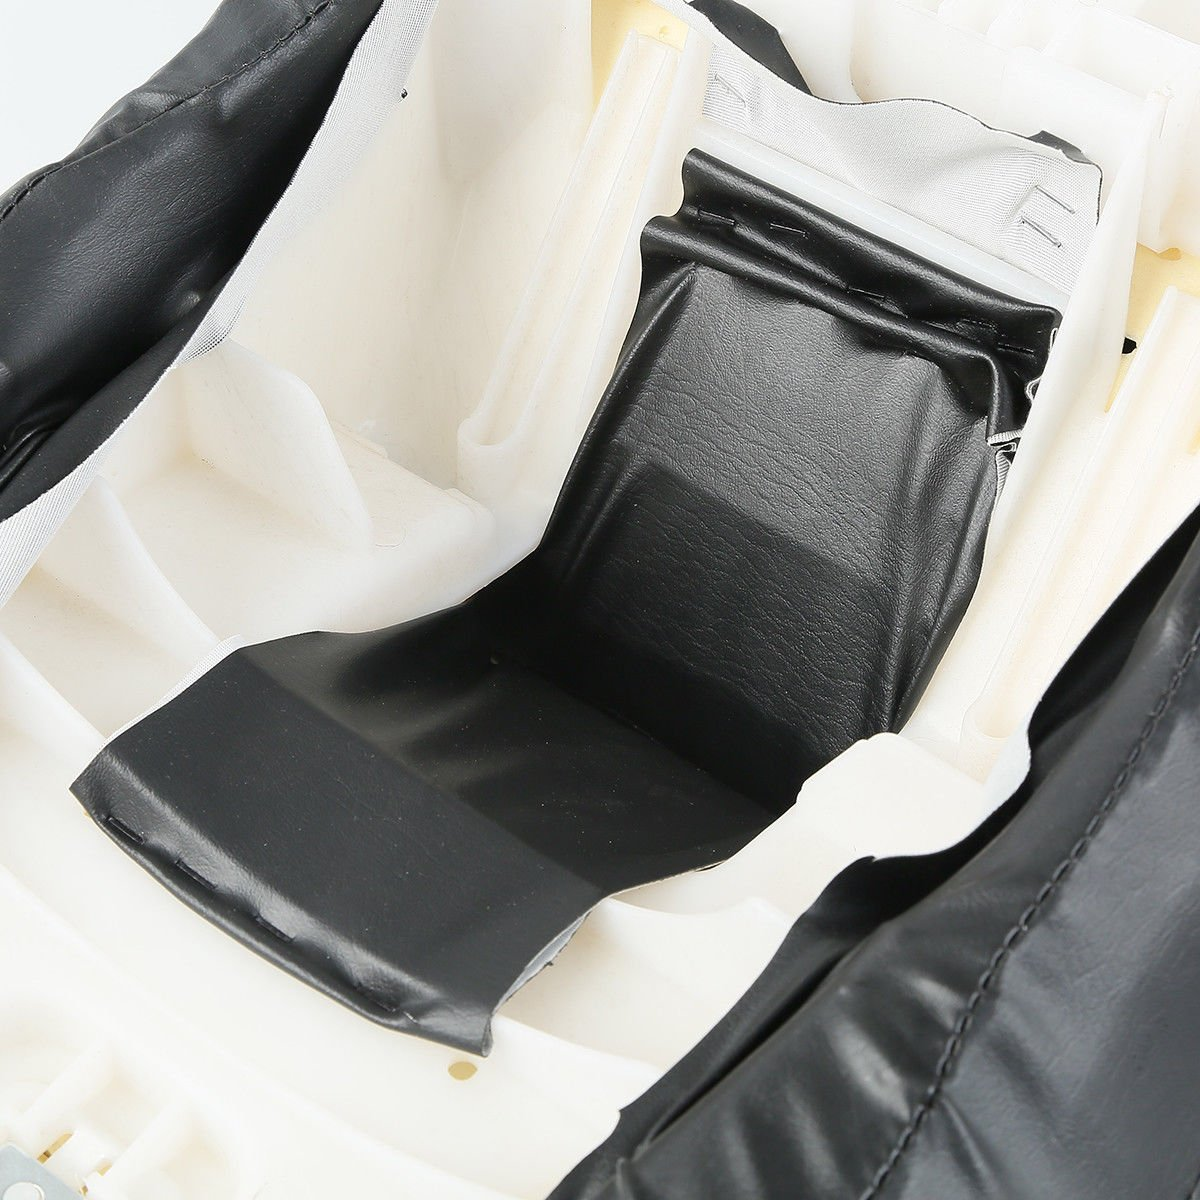 Tengchang New Hammock Rider and Passenger Seat Fit for Harley Touring FLHR FLHX FLTRX 14-17